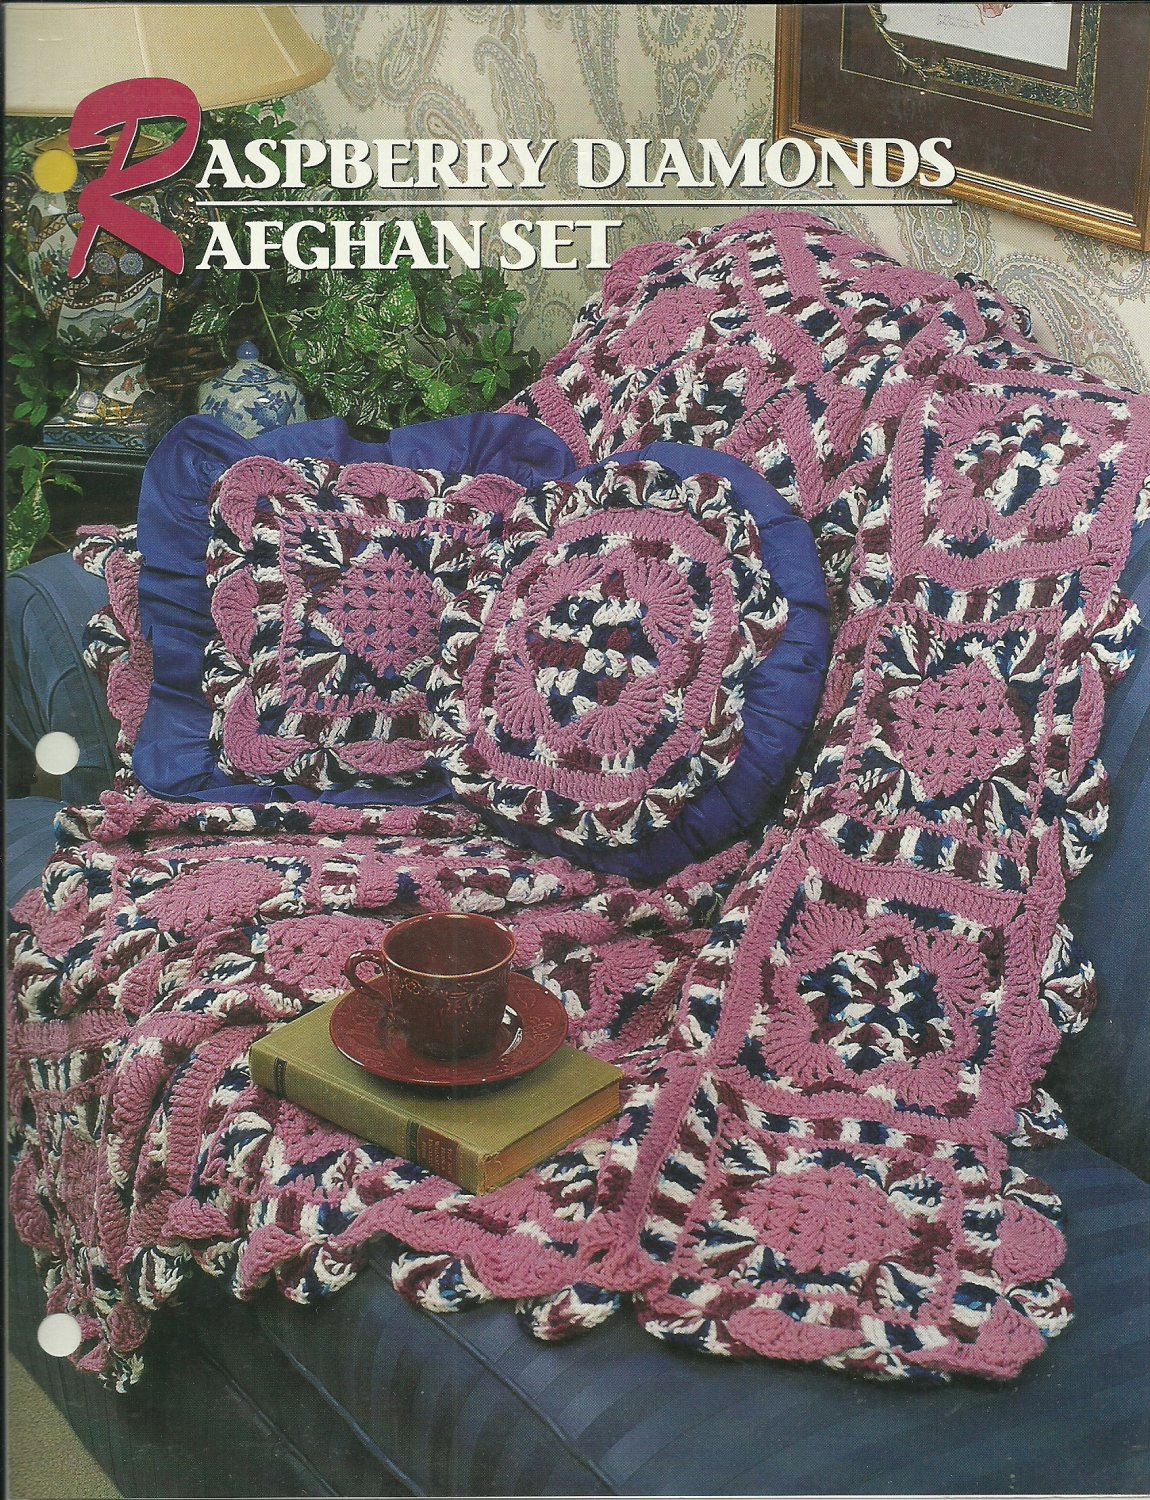 *Annie's Crochet Quilt Afghan Club - Raspberry Diamonds Afghan Set